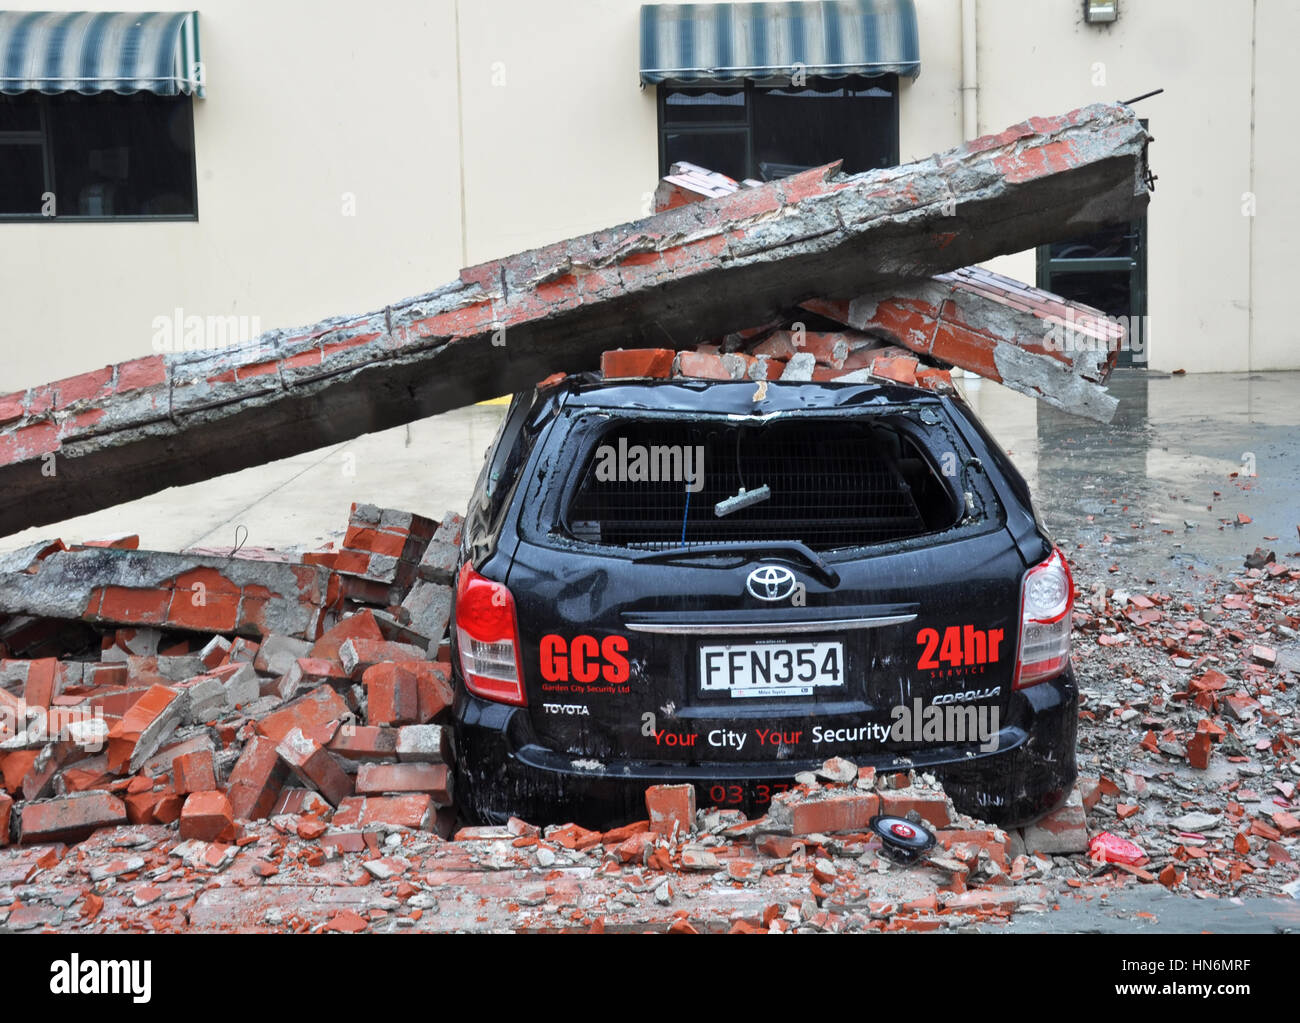 Christchurch, New Zealand - March 2011: A car is crushed by a collapsed brick wall on March 20, 2011 in Christchurch - Stock Image